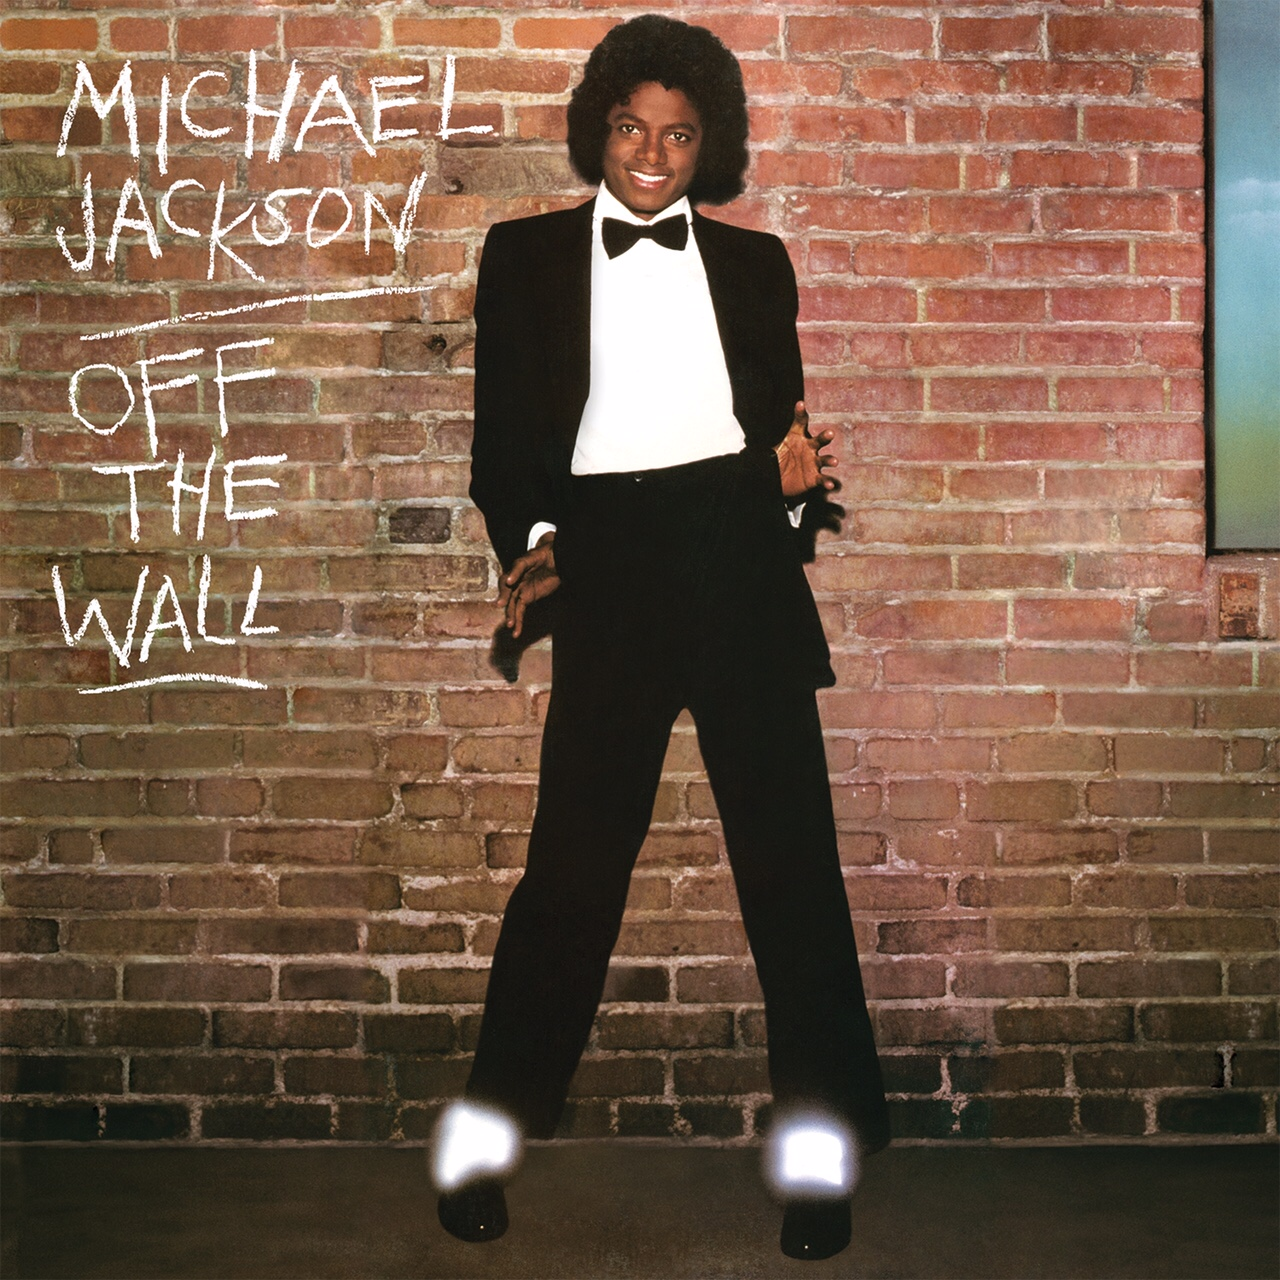 Michael Jackson Off The Wall Spike Lee documentary watch online